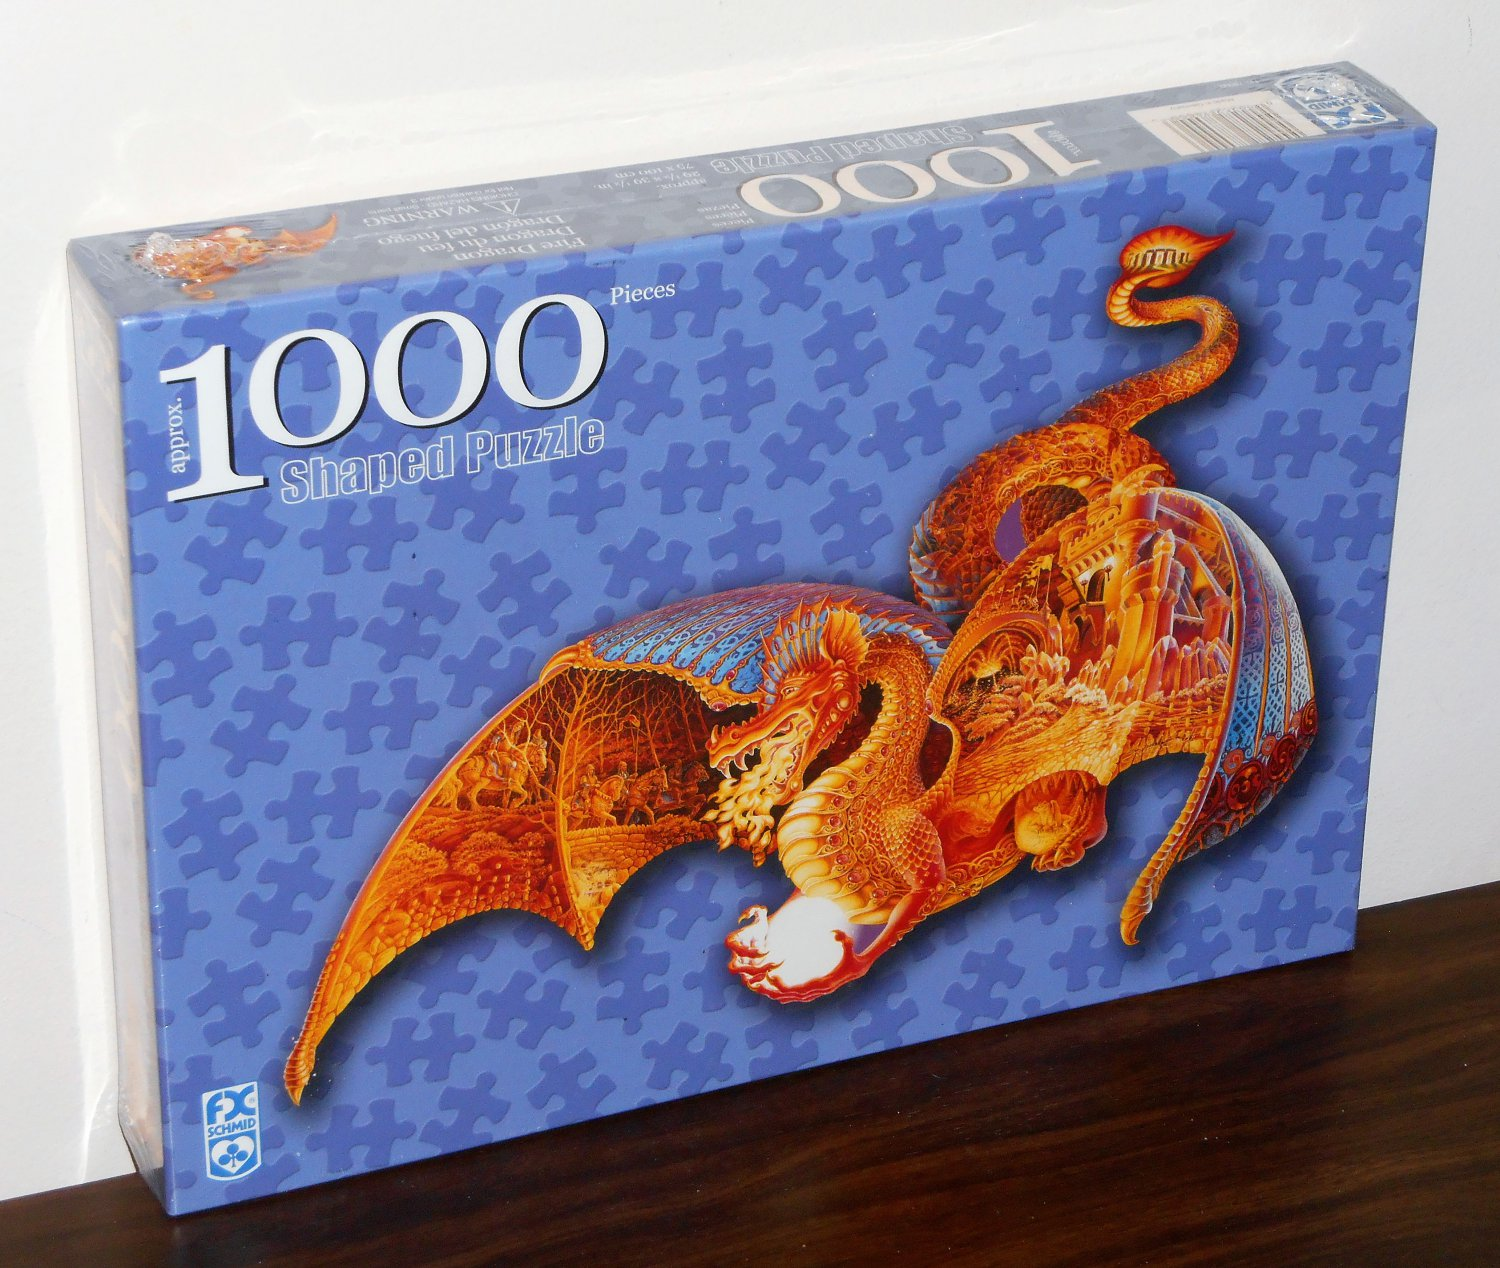 Fire Dragon 1000 Piece Shaped Jigsaw Puzzle FX Schmid Fantasy  78000 Factory Sealed 2000 Sally Smith